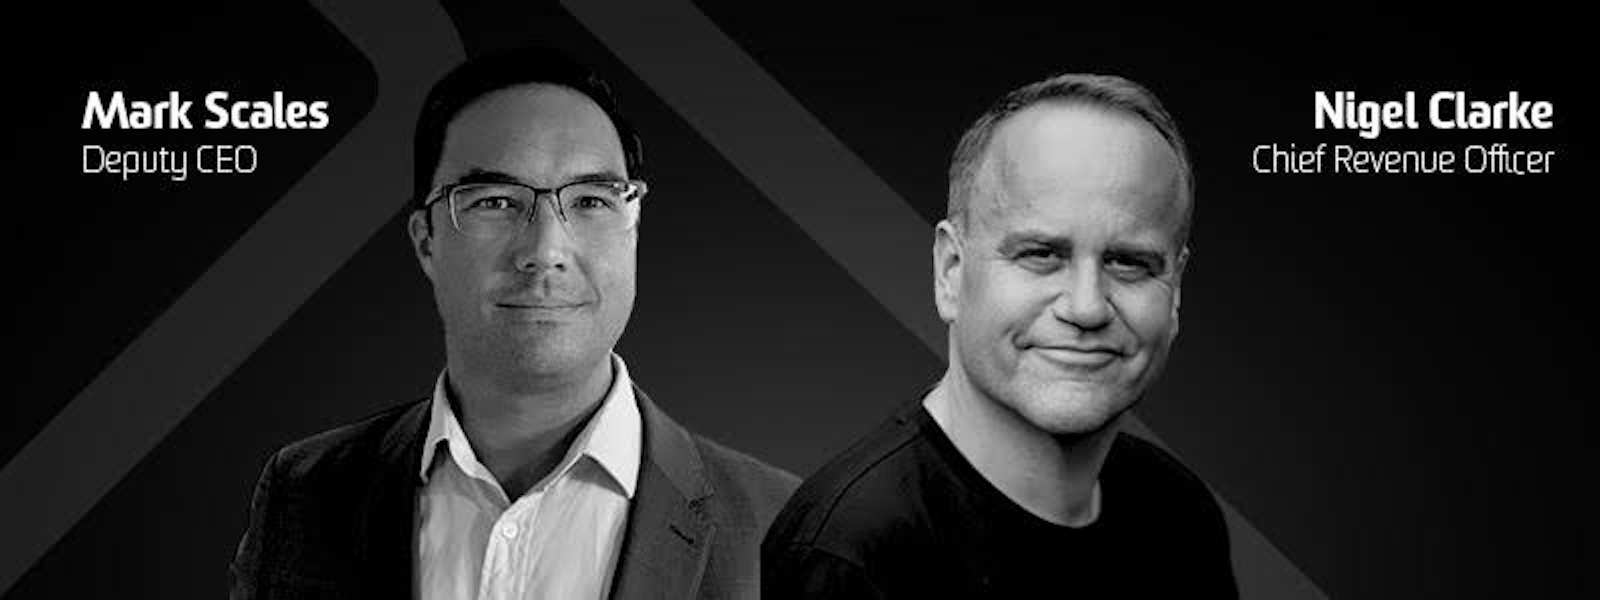 KERB welcomes two exceptional executives to the team